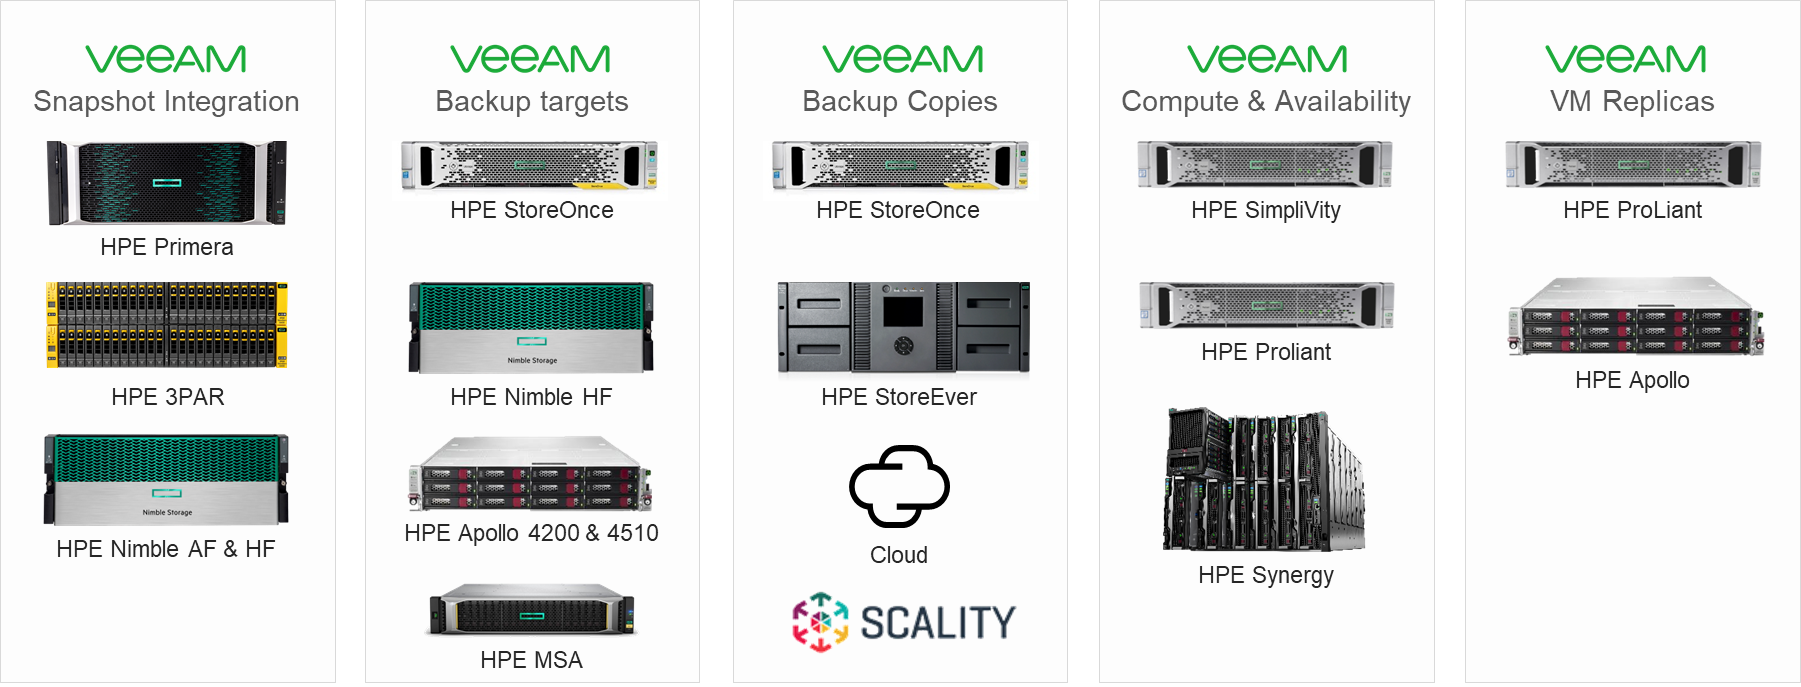 Veeam Complements HPE Infrastructure